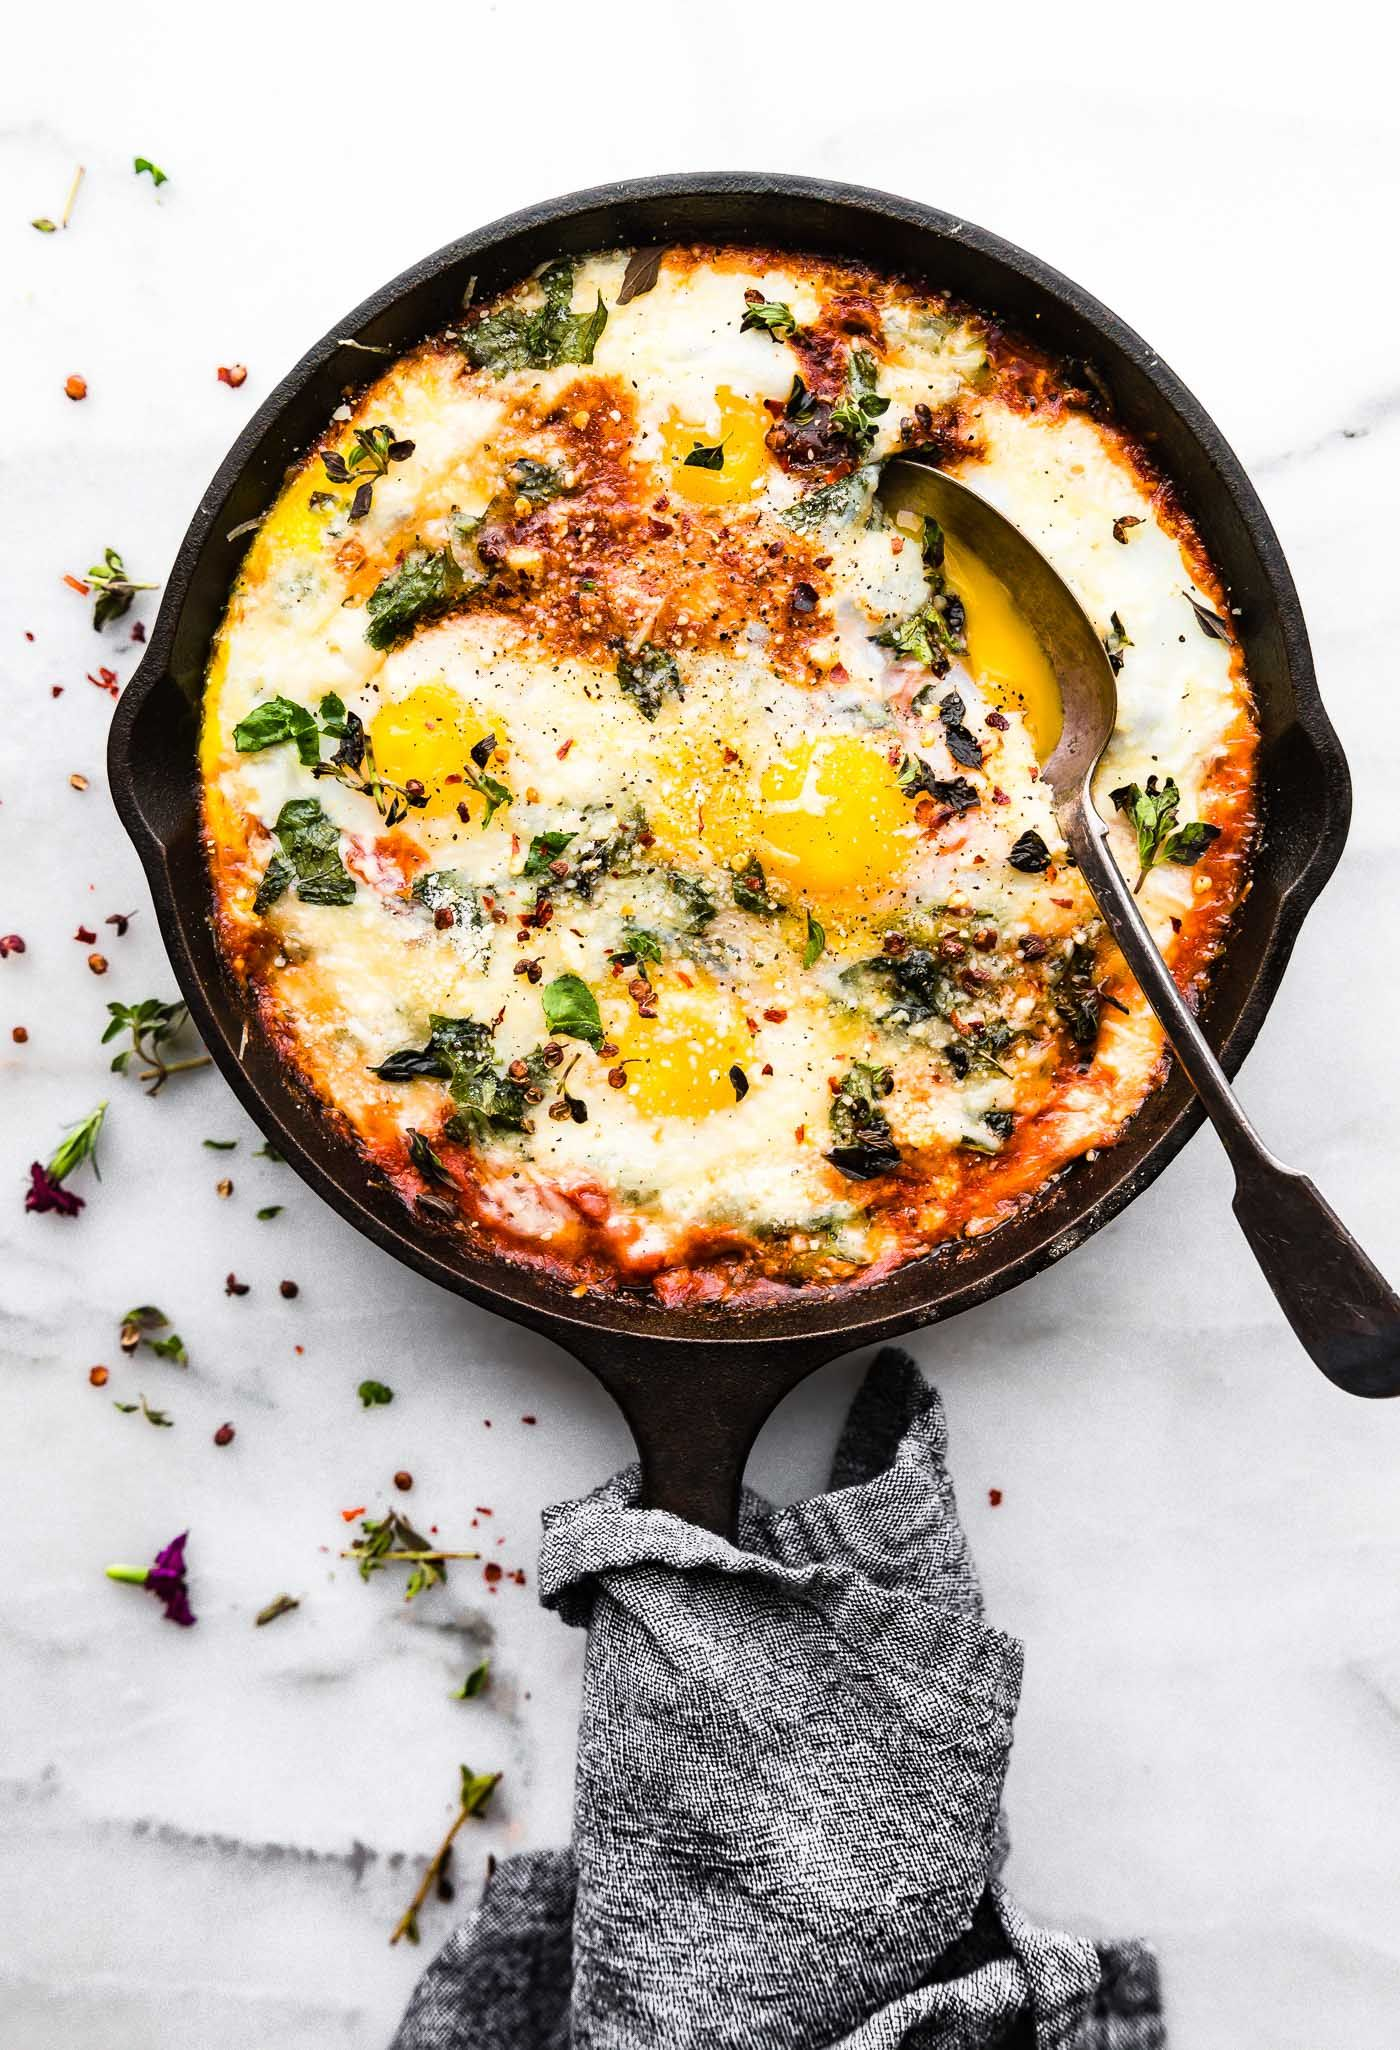 Italian Egg Bake (Low Carb Breakfast) images